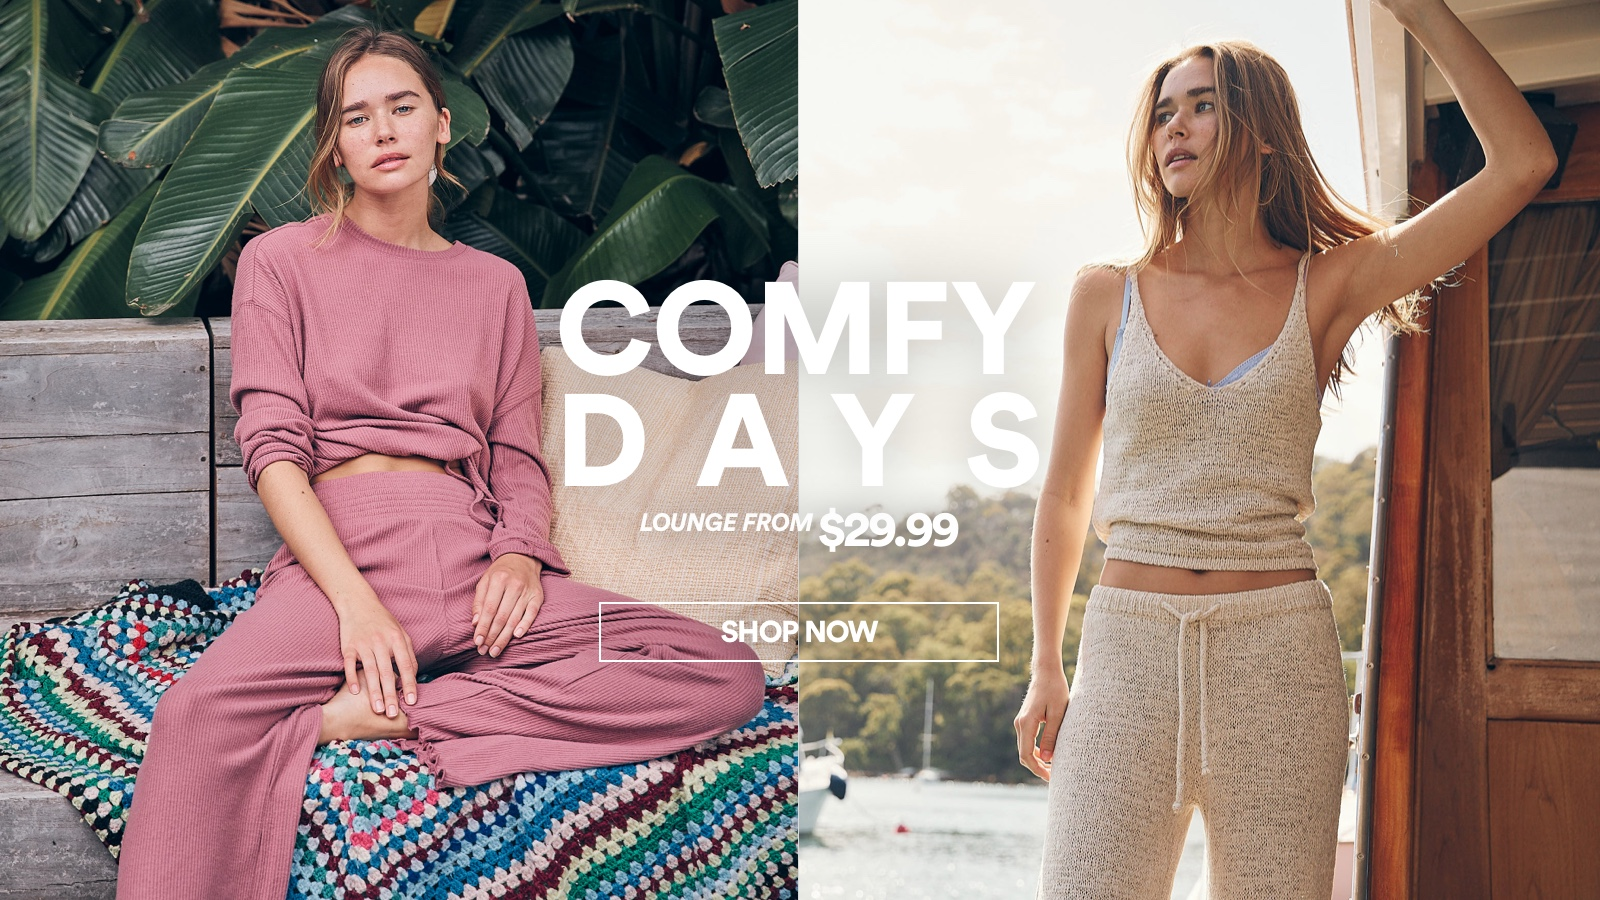 Comfy Days. Click to Shop Lounge.